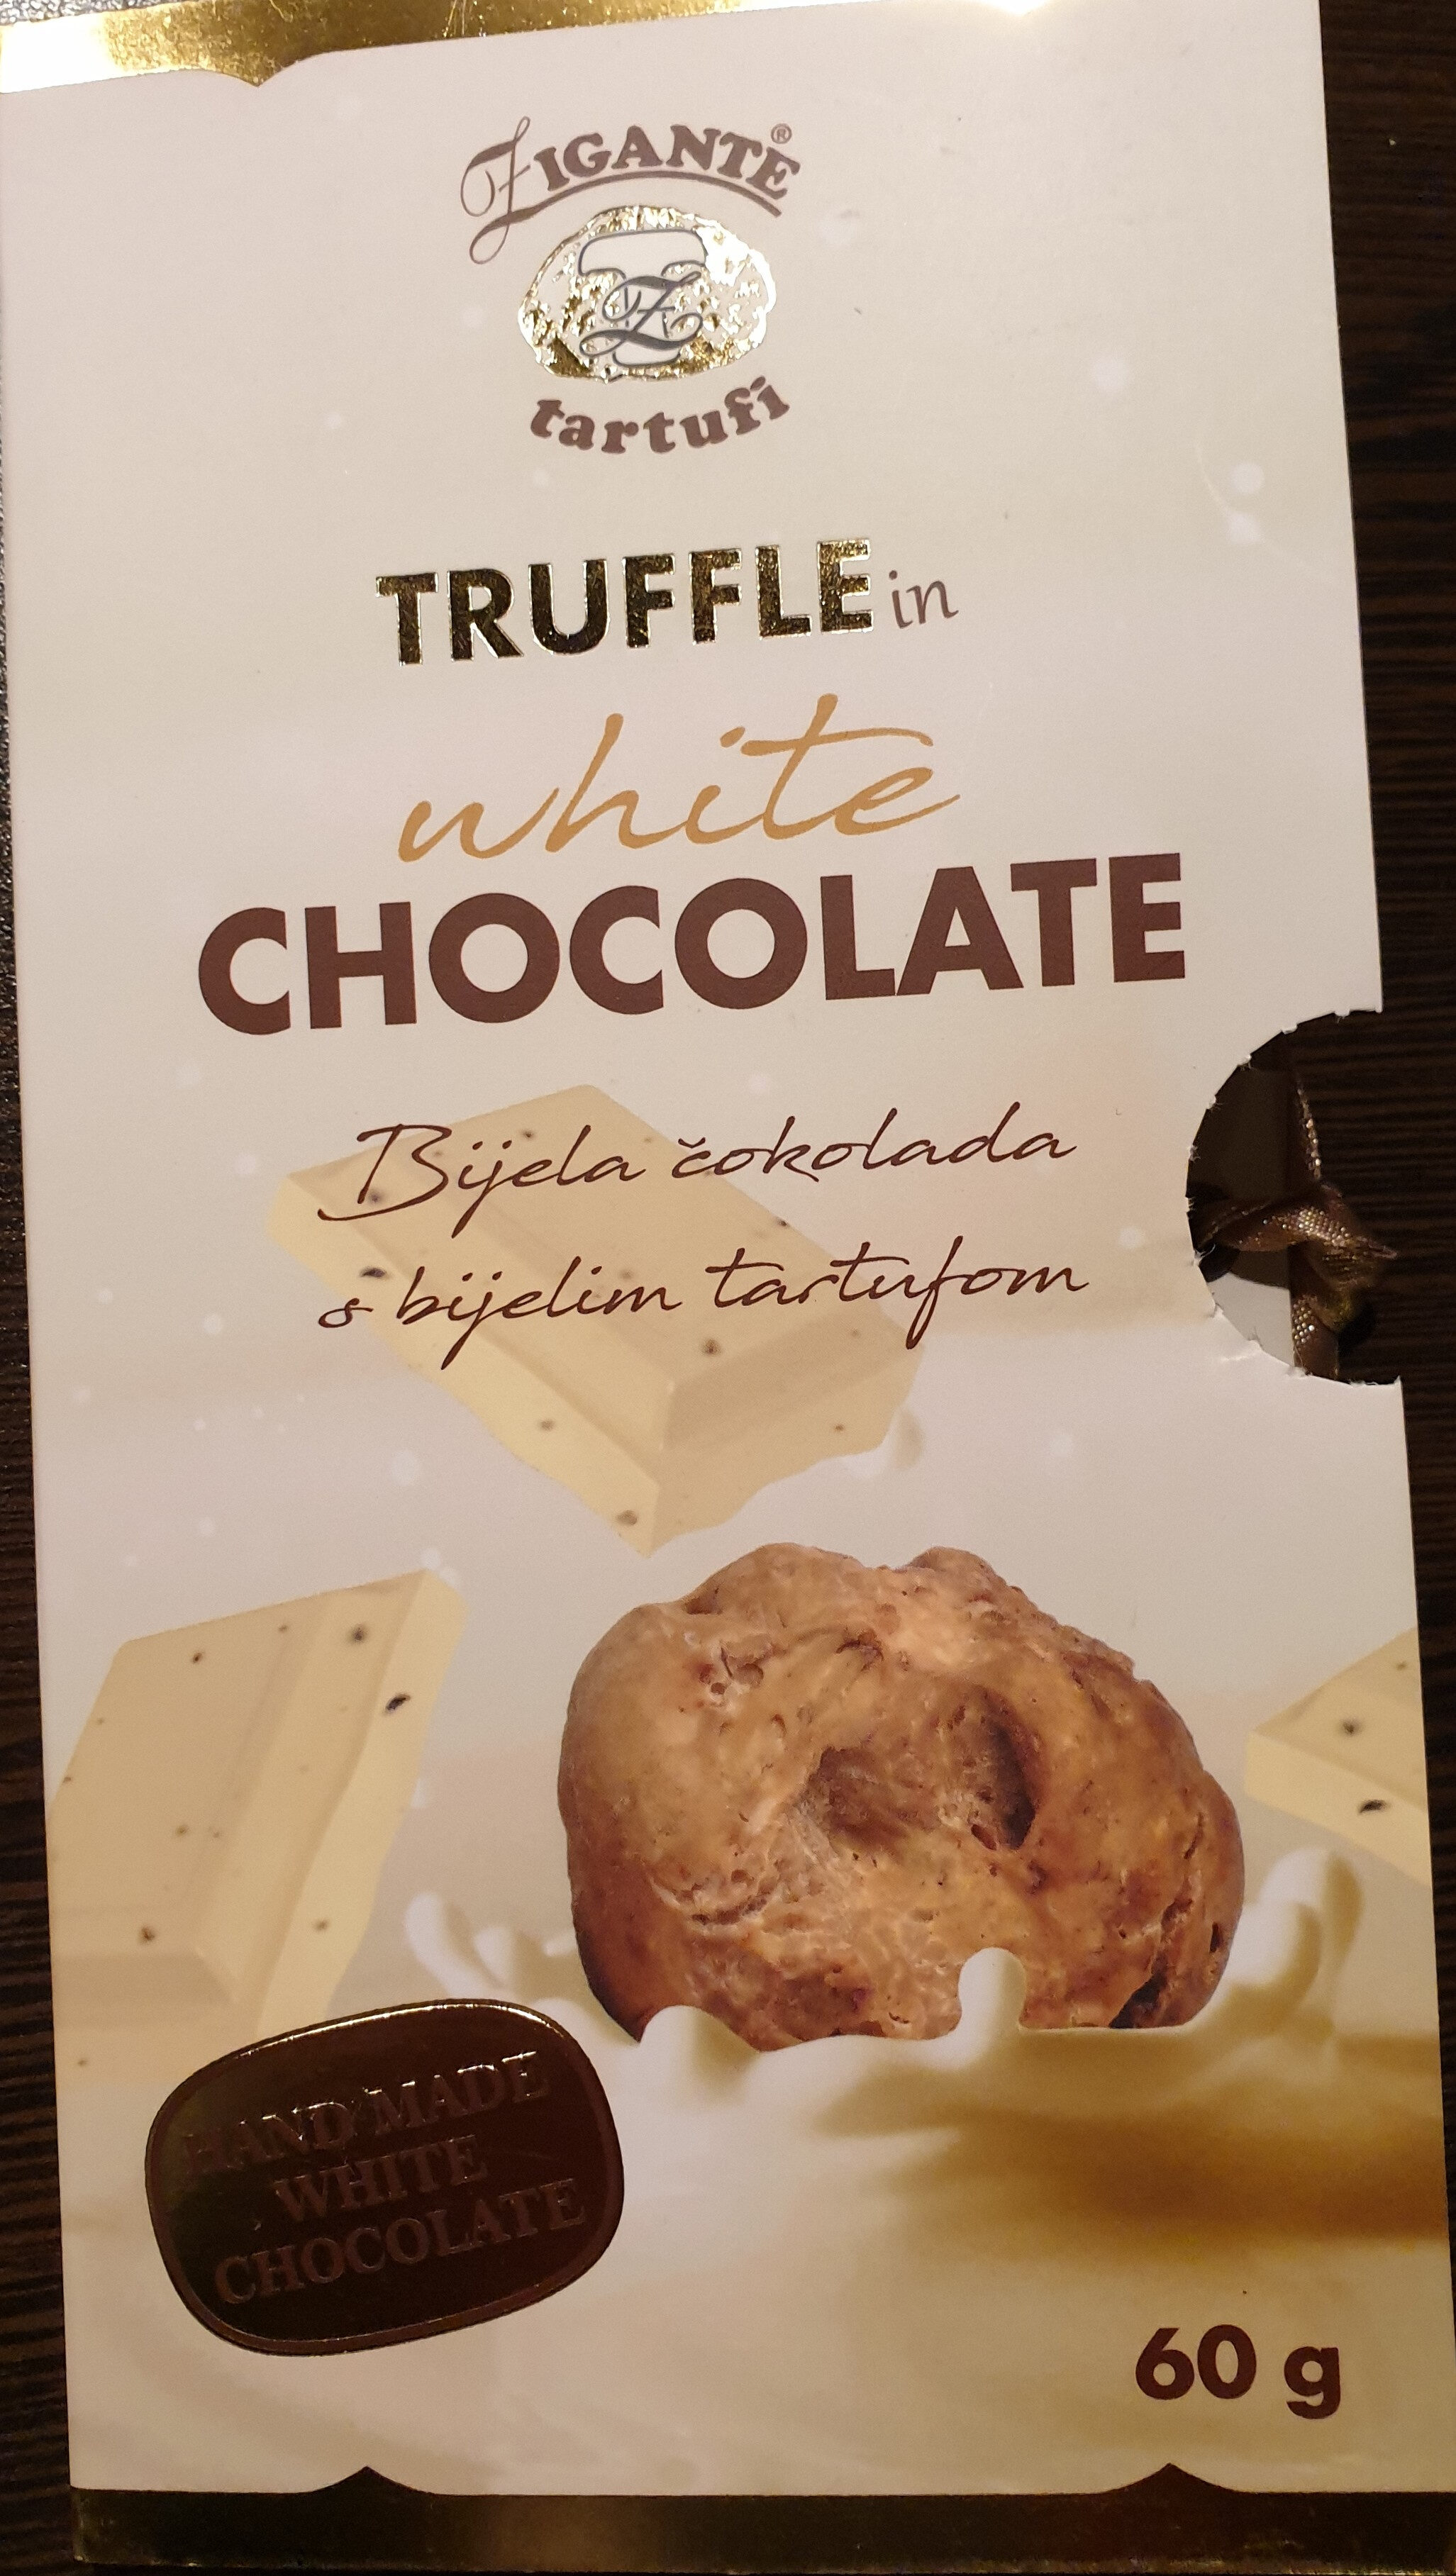 Truffle in white chocolate - Product